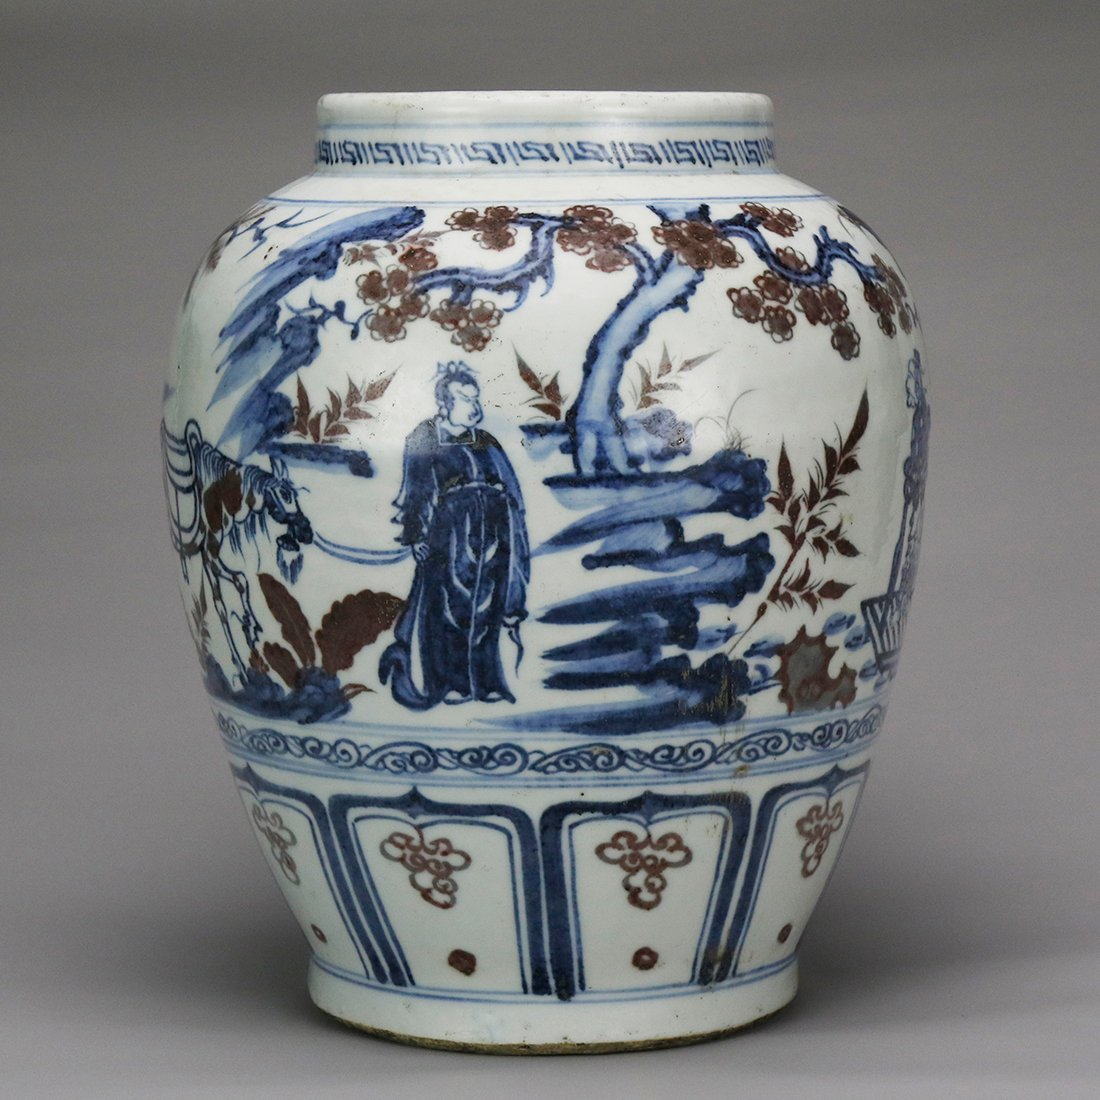 China 15 Century blue and white glazed red ceramic pot - 4